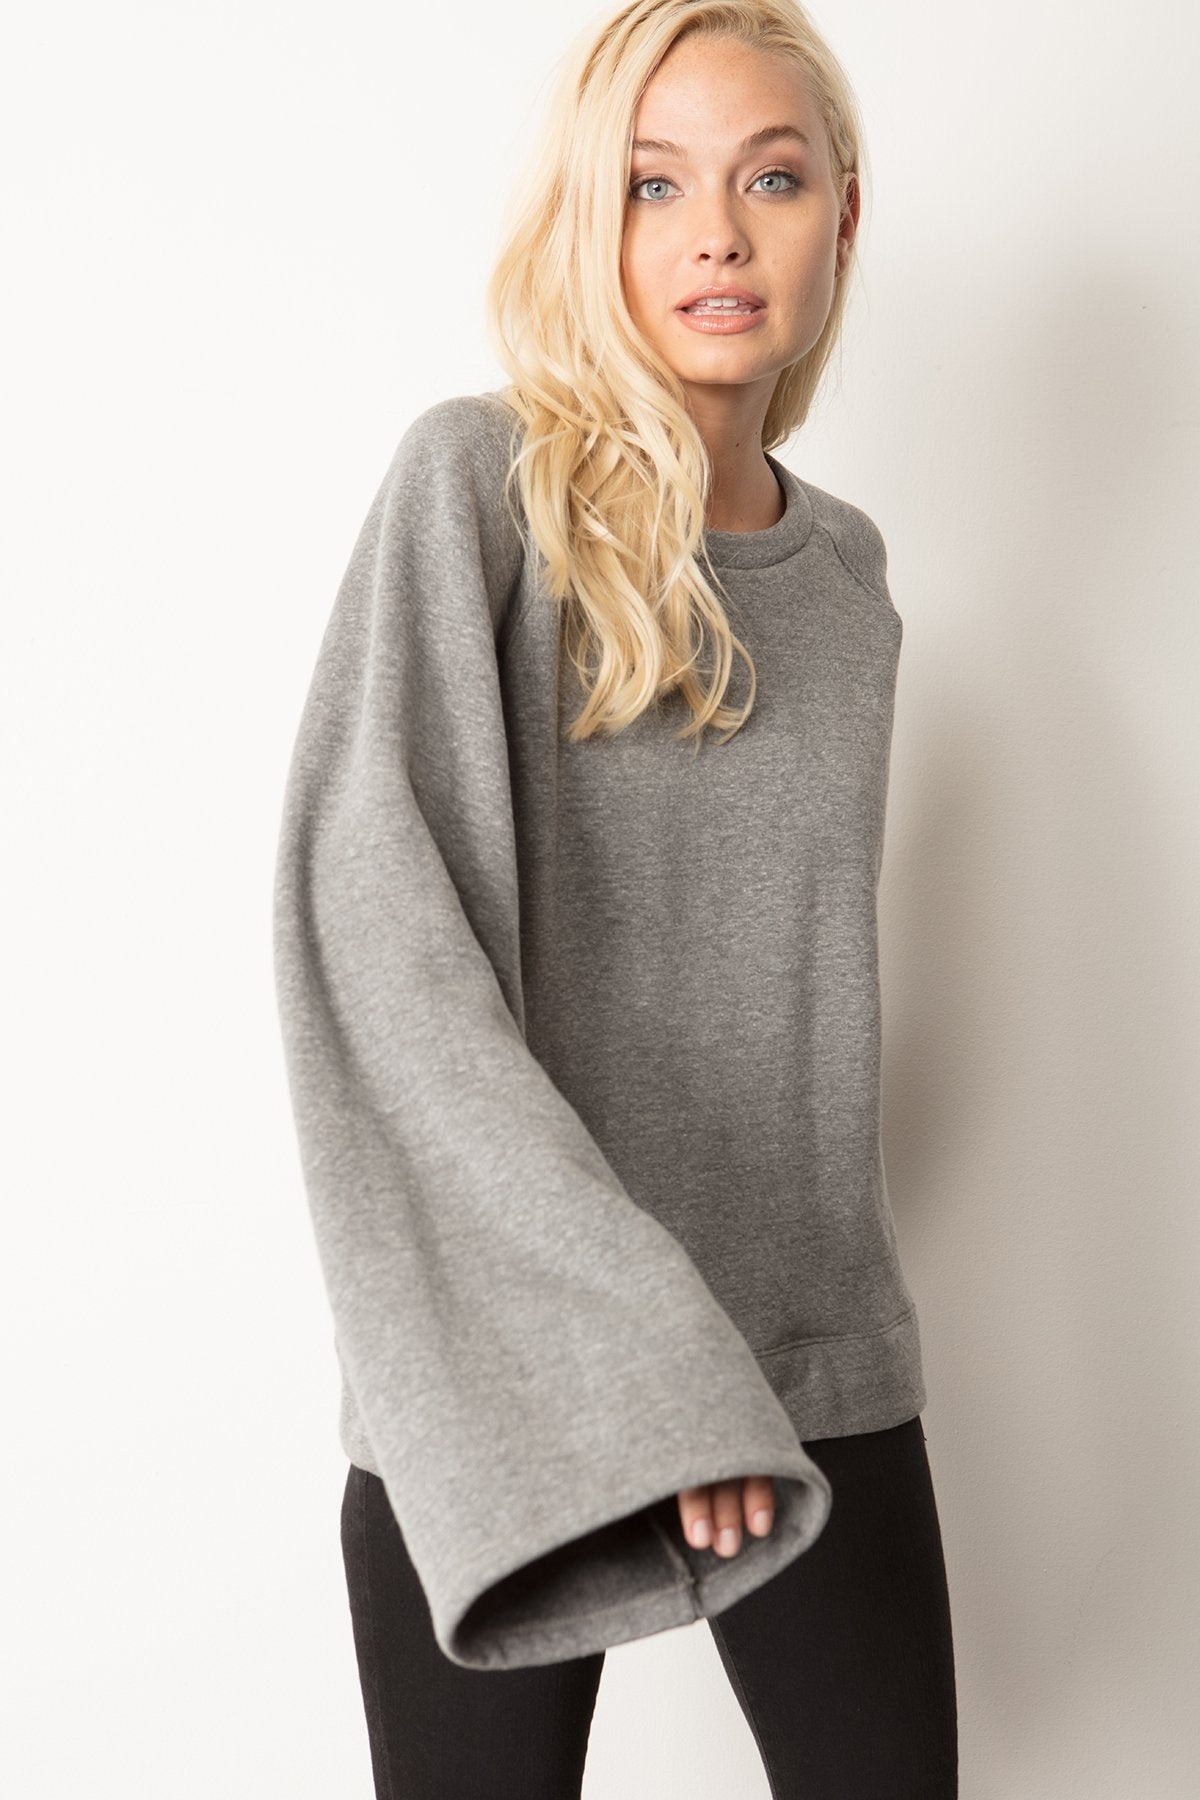 Bella Sweatshirt - Marly Rae